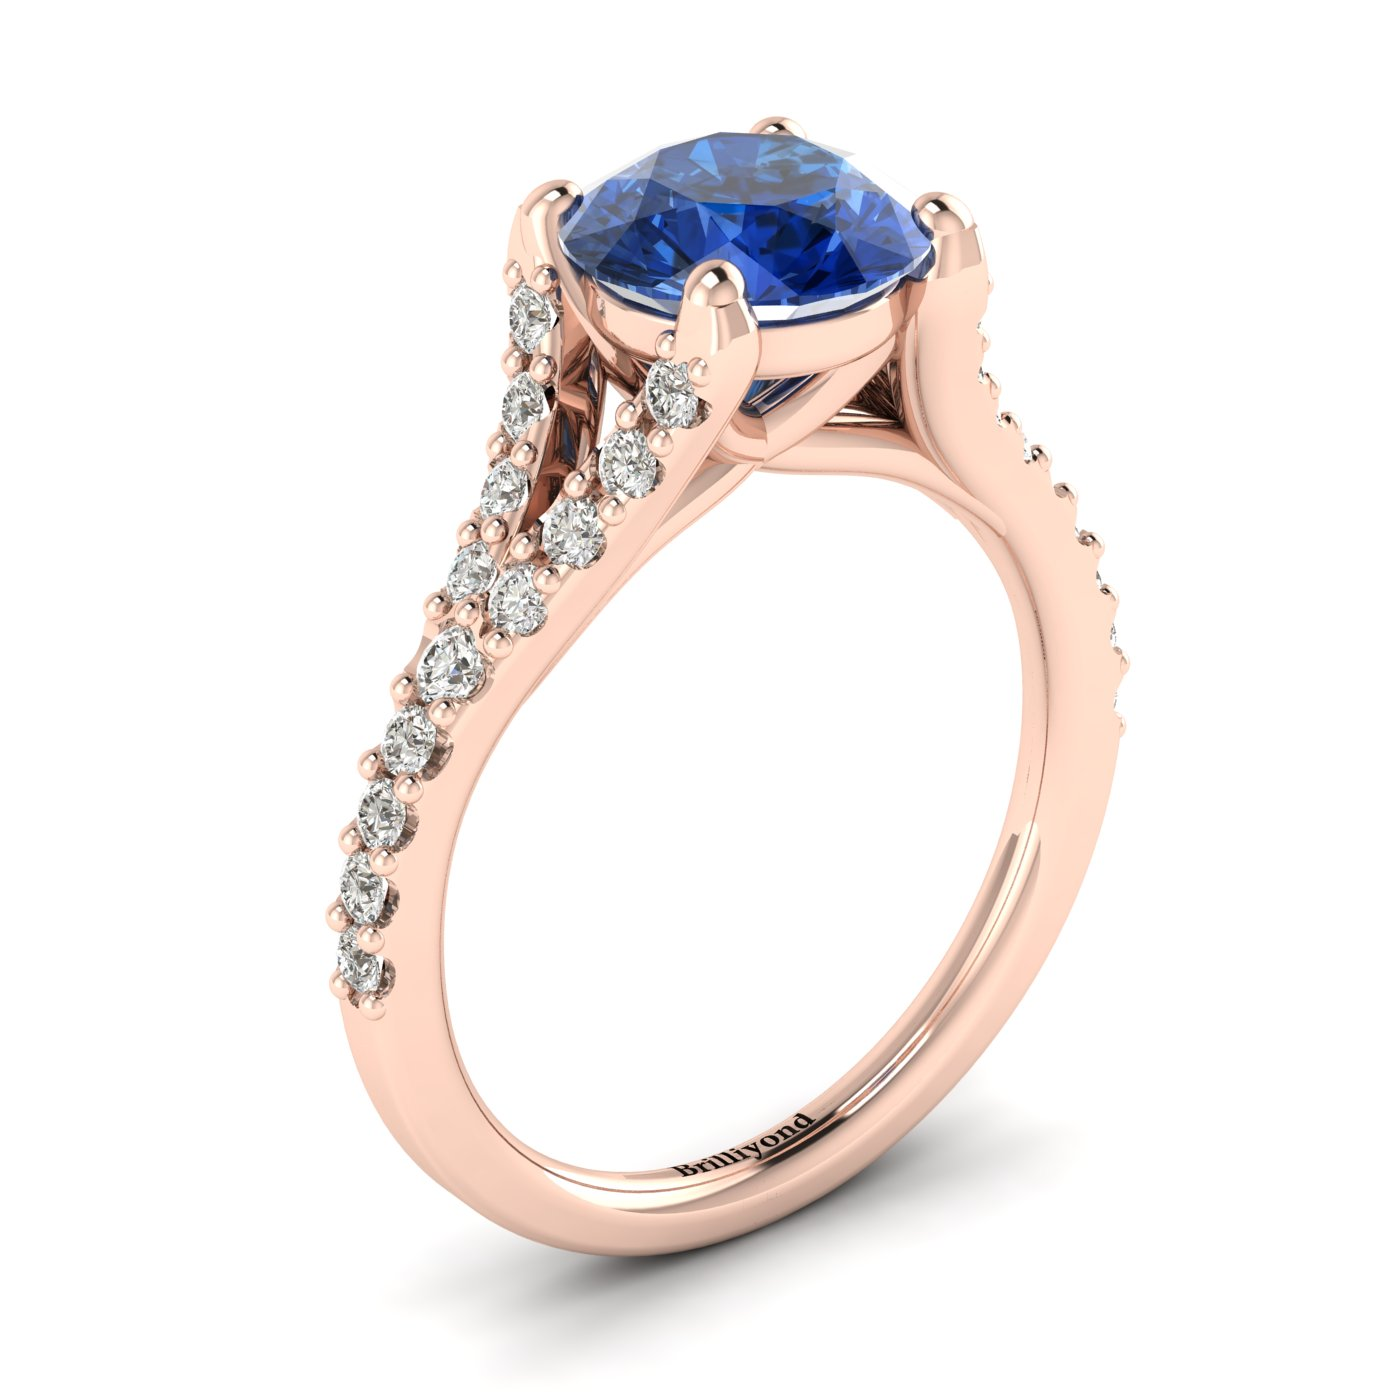 This Ceylon sapphire engagement ring has features 26 created diamond accent stones in a pavé split shank setting.